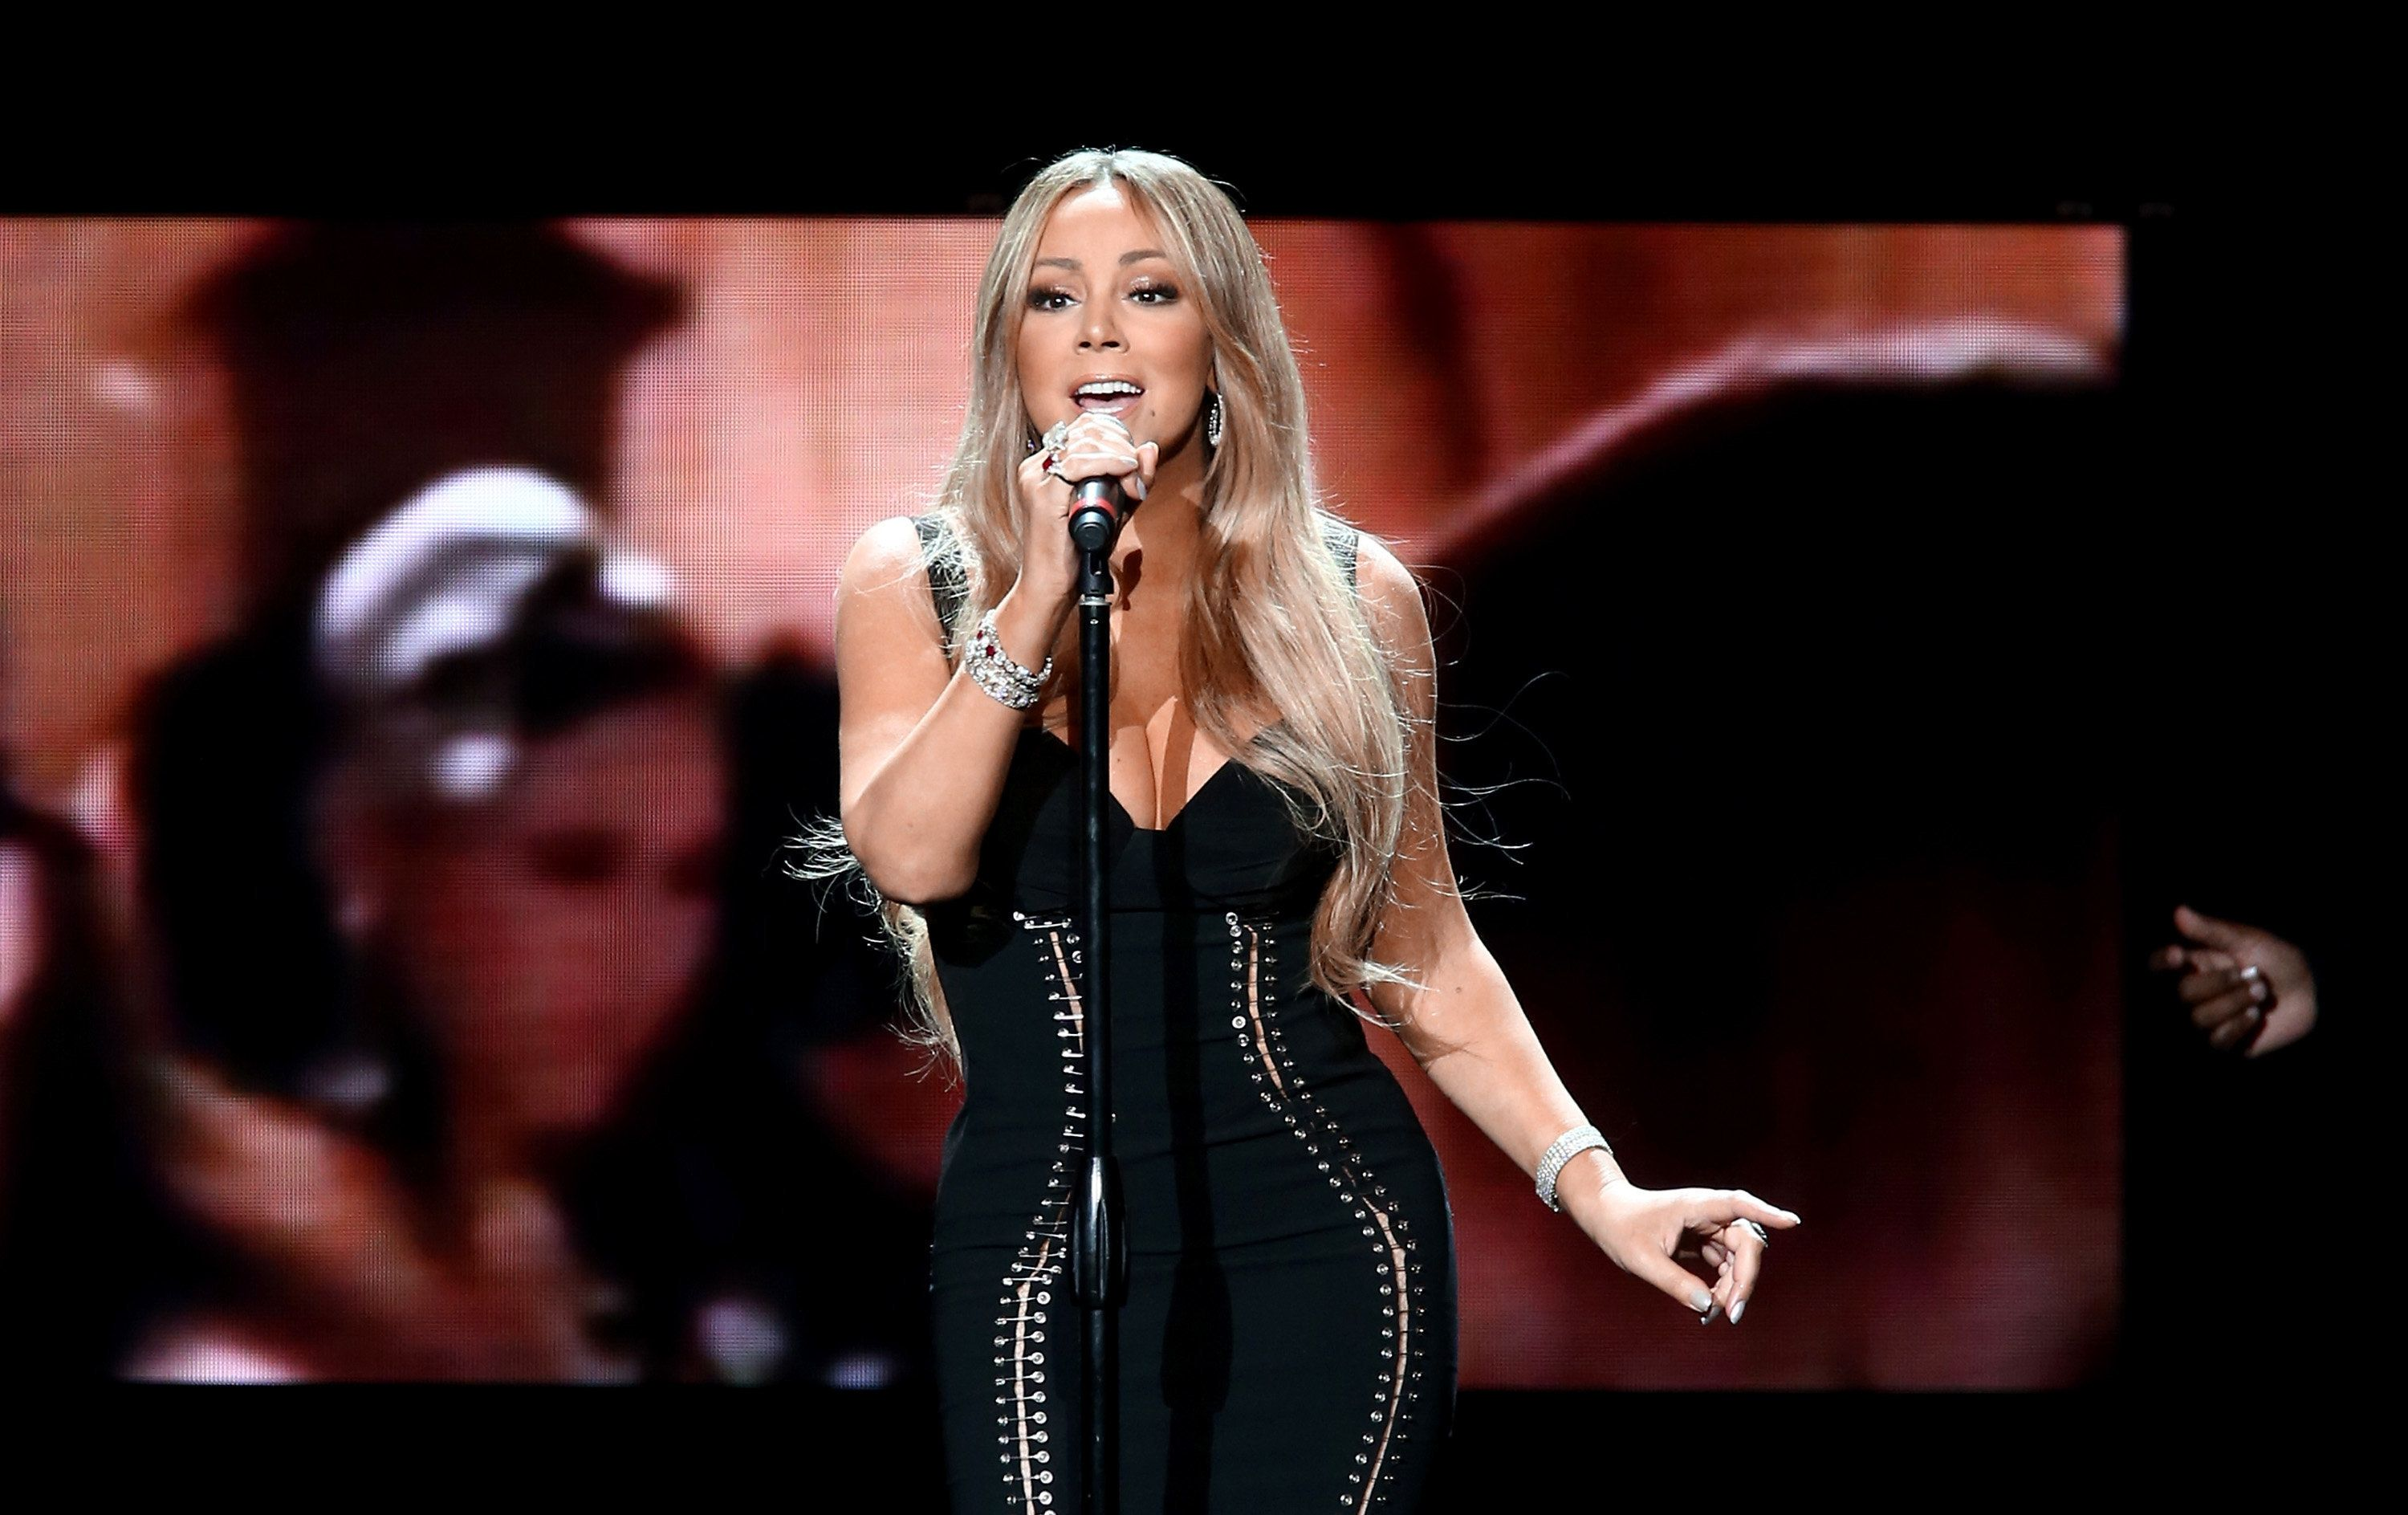 LOS ANGELES, CA - NOVEMBER 30:  Mariah Carey performs onstage during the AHF World AIDS DAY Concert and 30th Anniversary Celebration featuring Mariah Carey and DJ Khaled at the Shrine Auditorium on November 30, 2017 in Los Angeles, California.  (Photo by Tommaso Boddi/Getty Images for AIDS Healthcare Foundation)